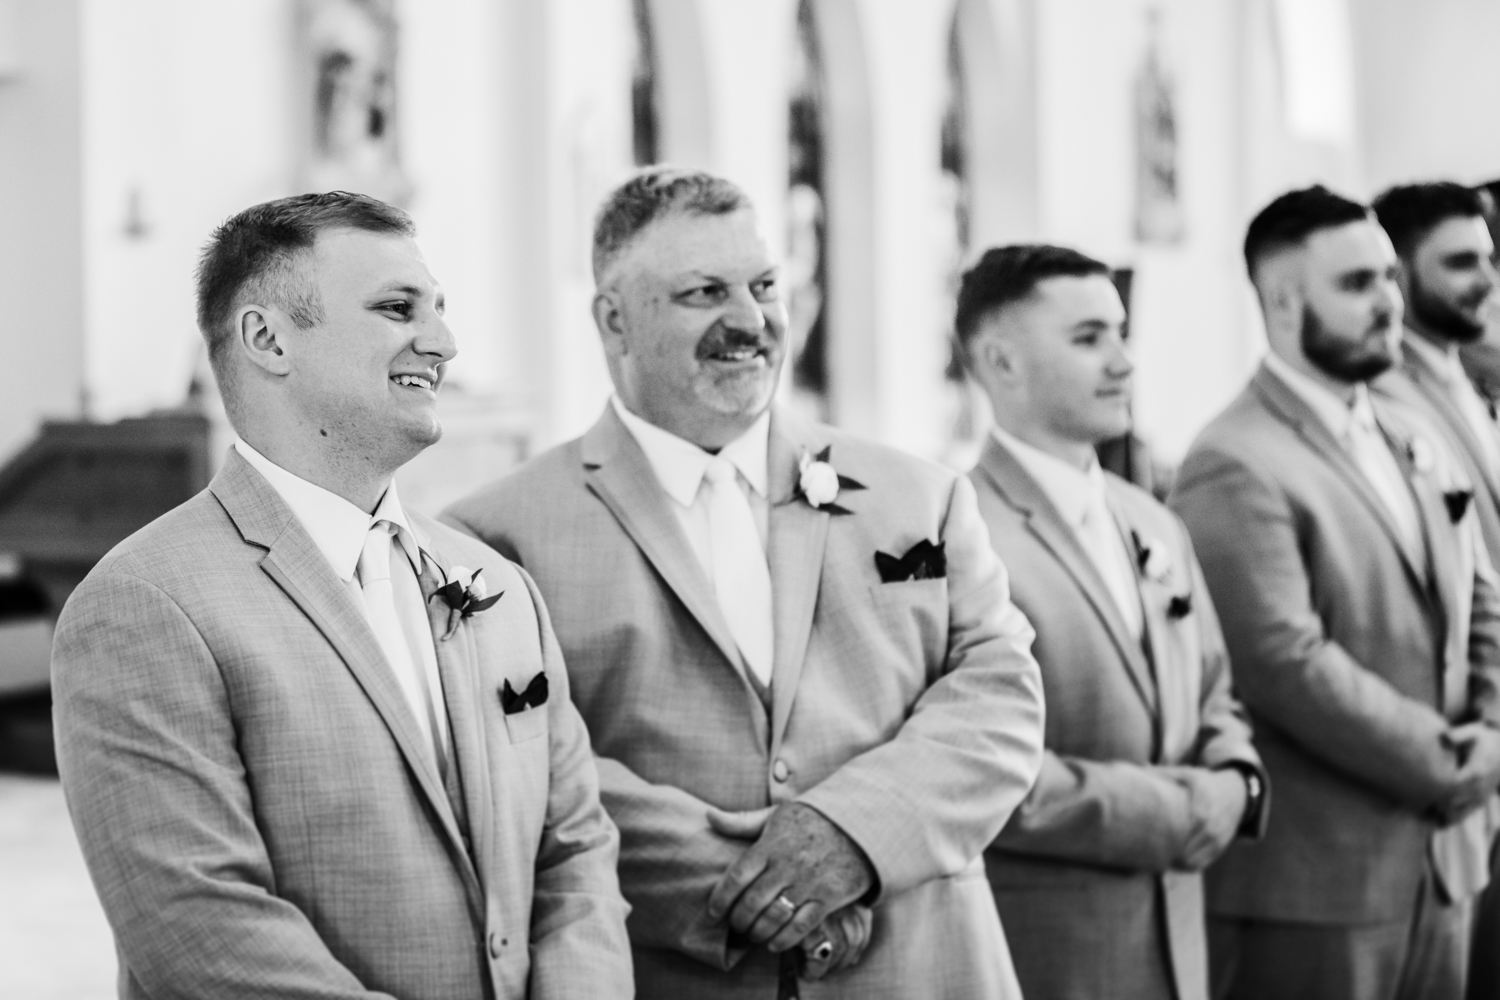 grooms reaction to his bride walking down the aisle in westminster, md